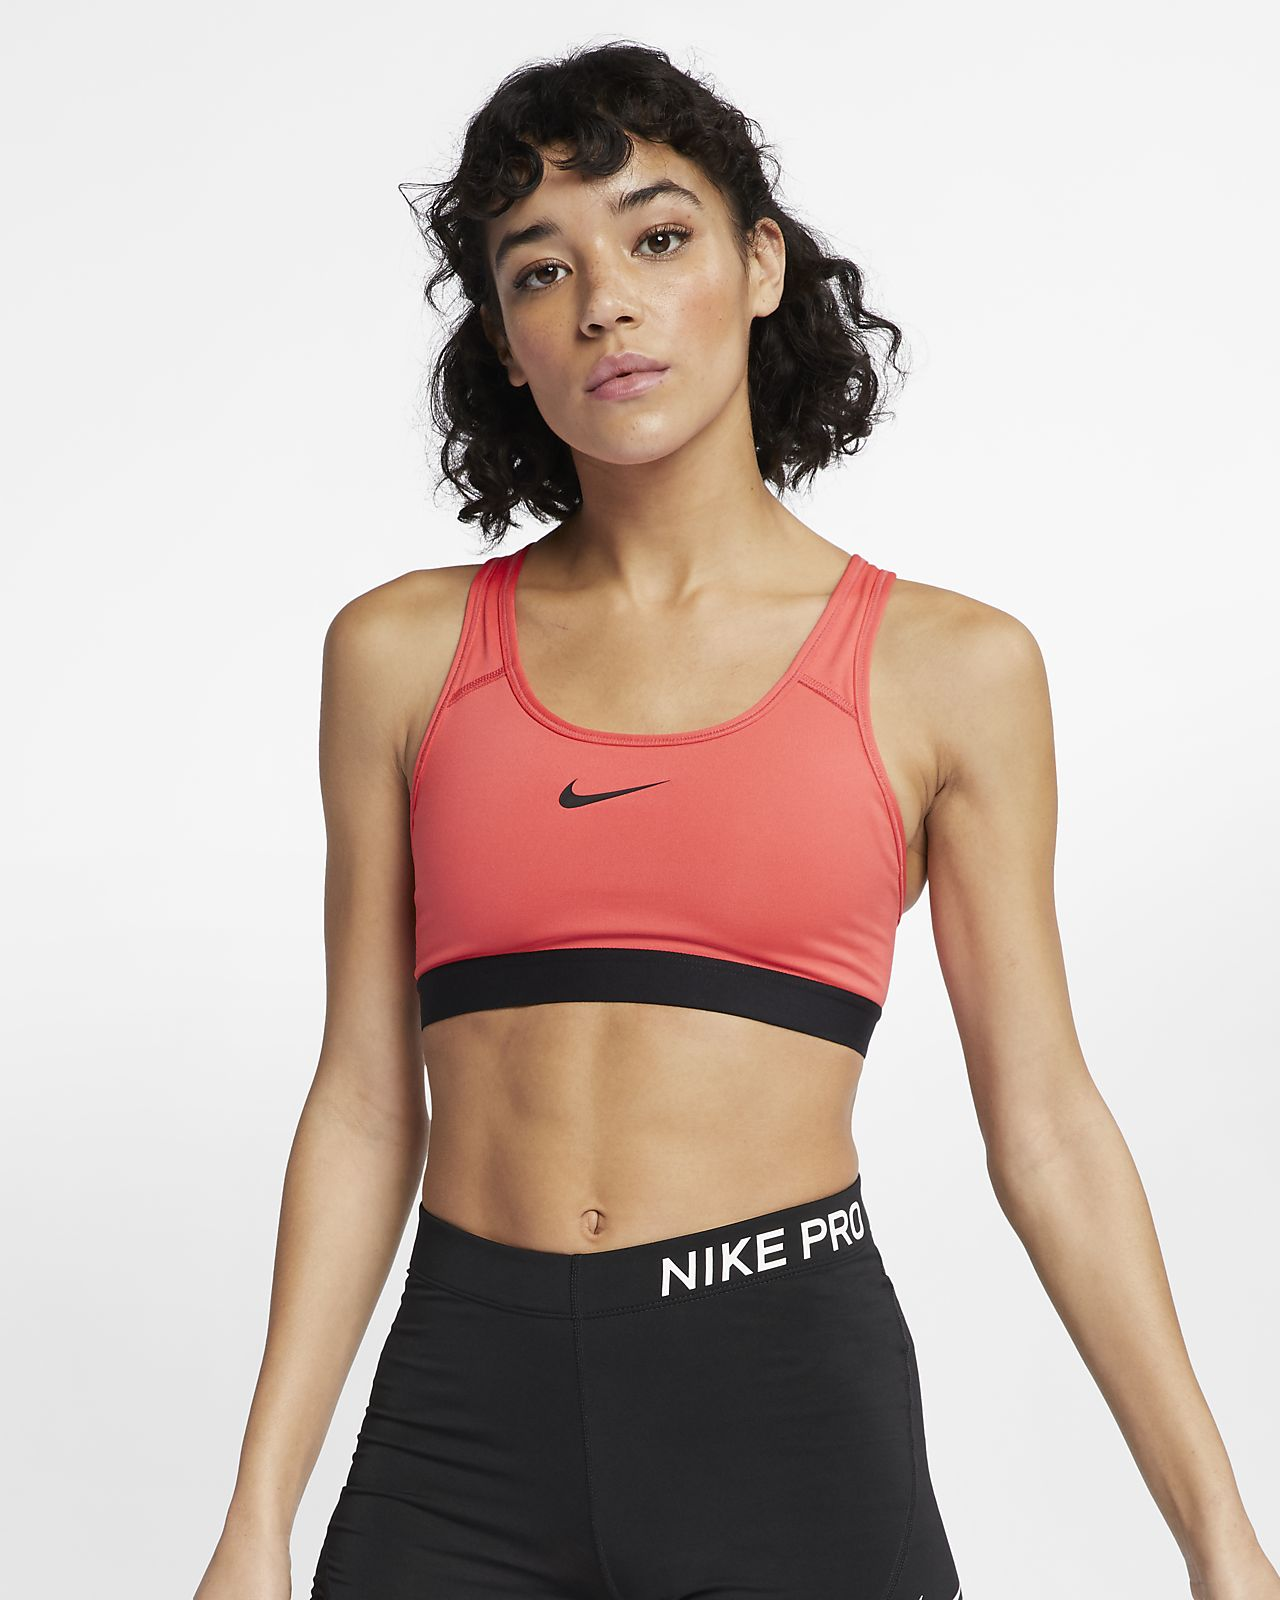 af4f0d073ff95 Nike Classic Padded Women s Medium-Support Sports Bra. Nike.com